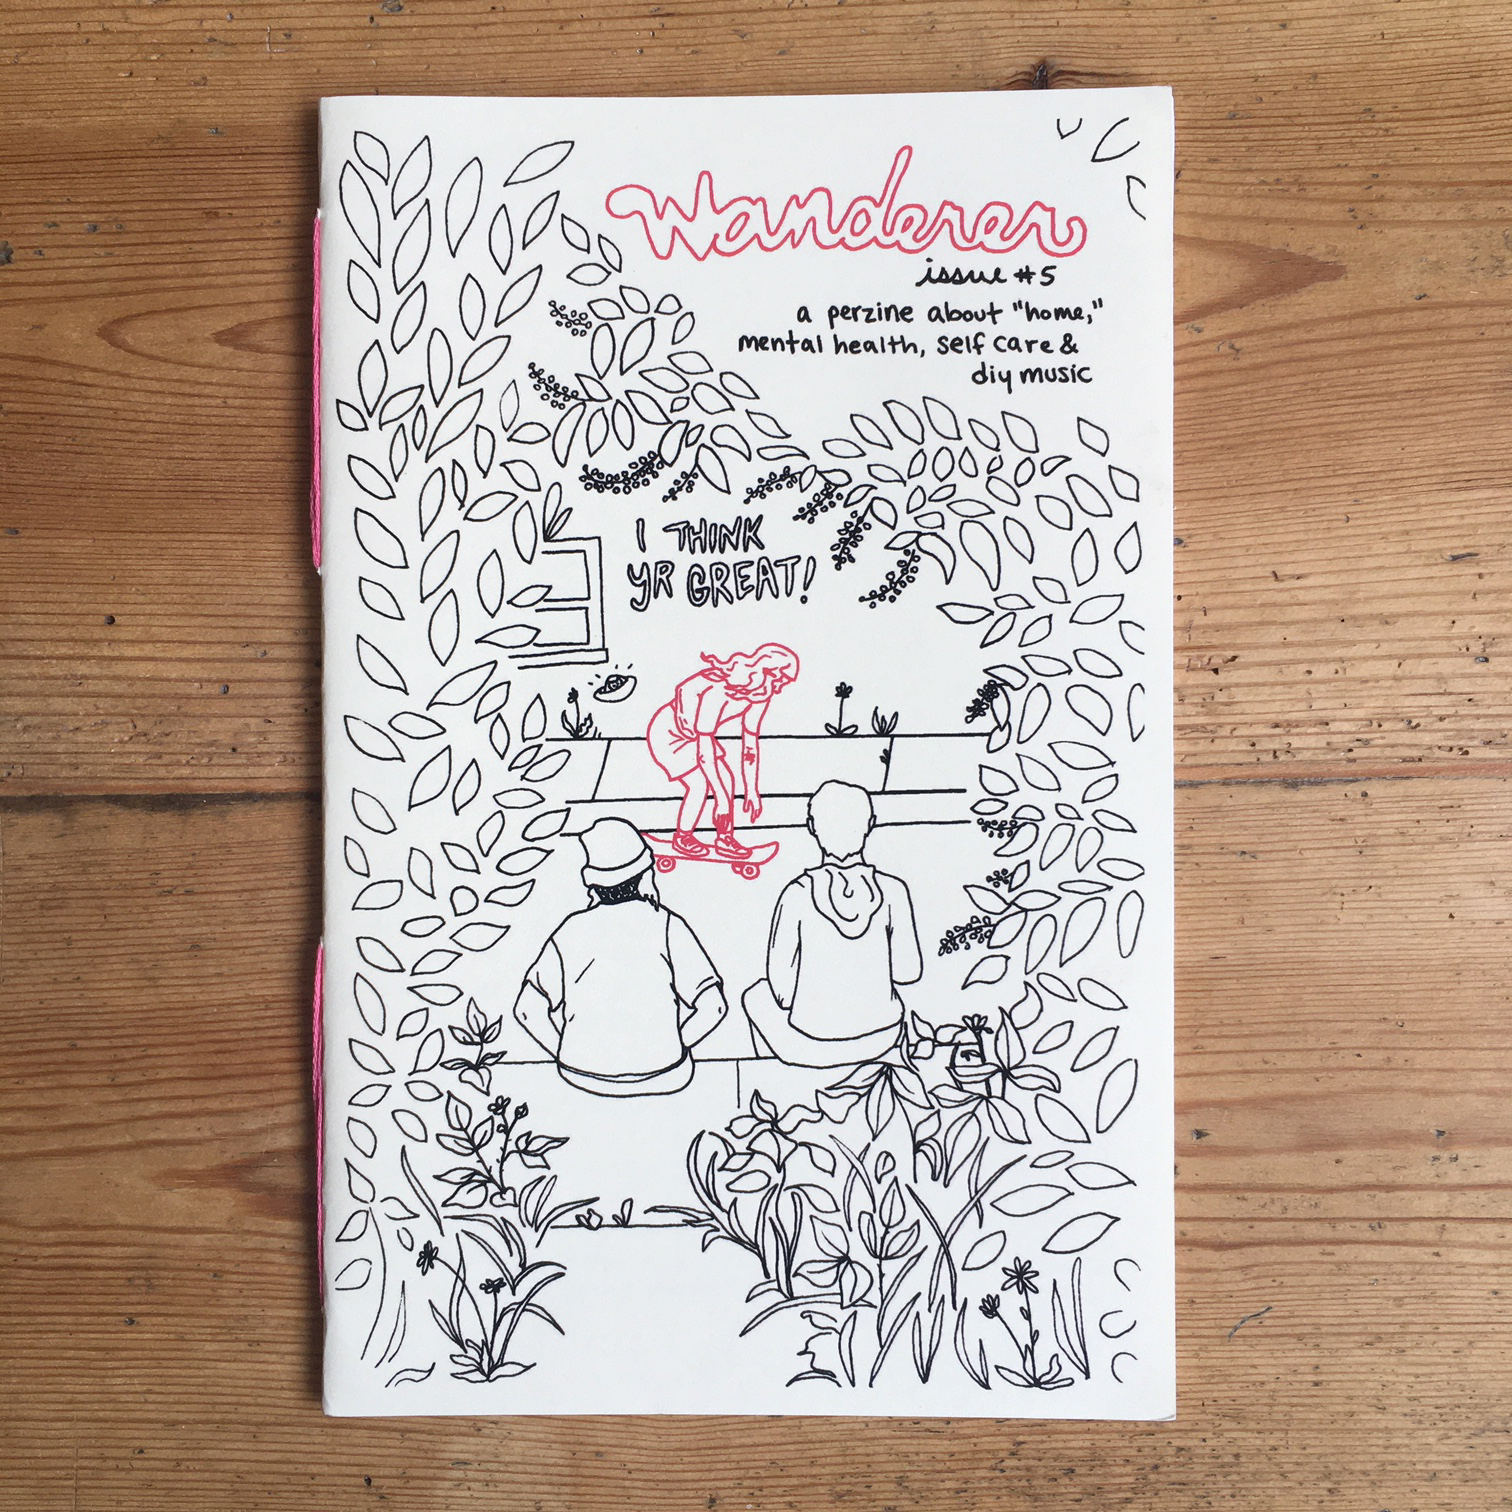 Wanderer, Issues #5 & #6: A Perzine About Home, Mental Health, Self Care & DIY Music